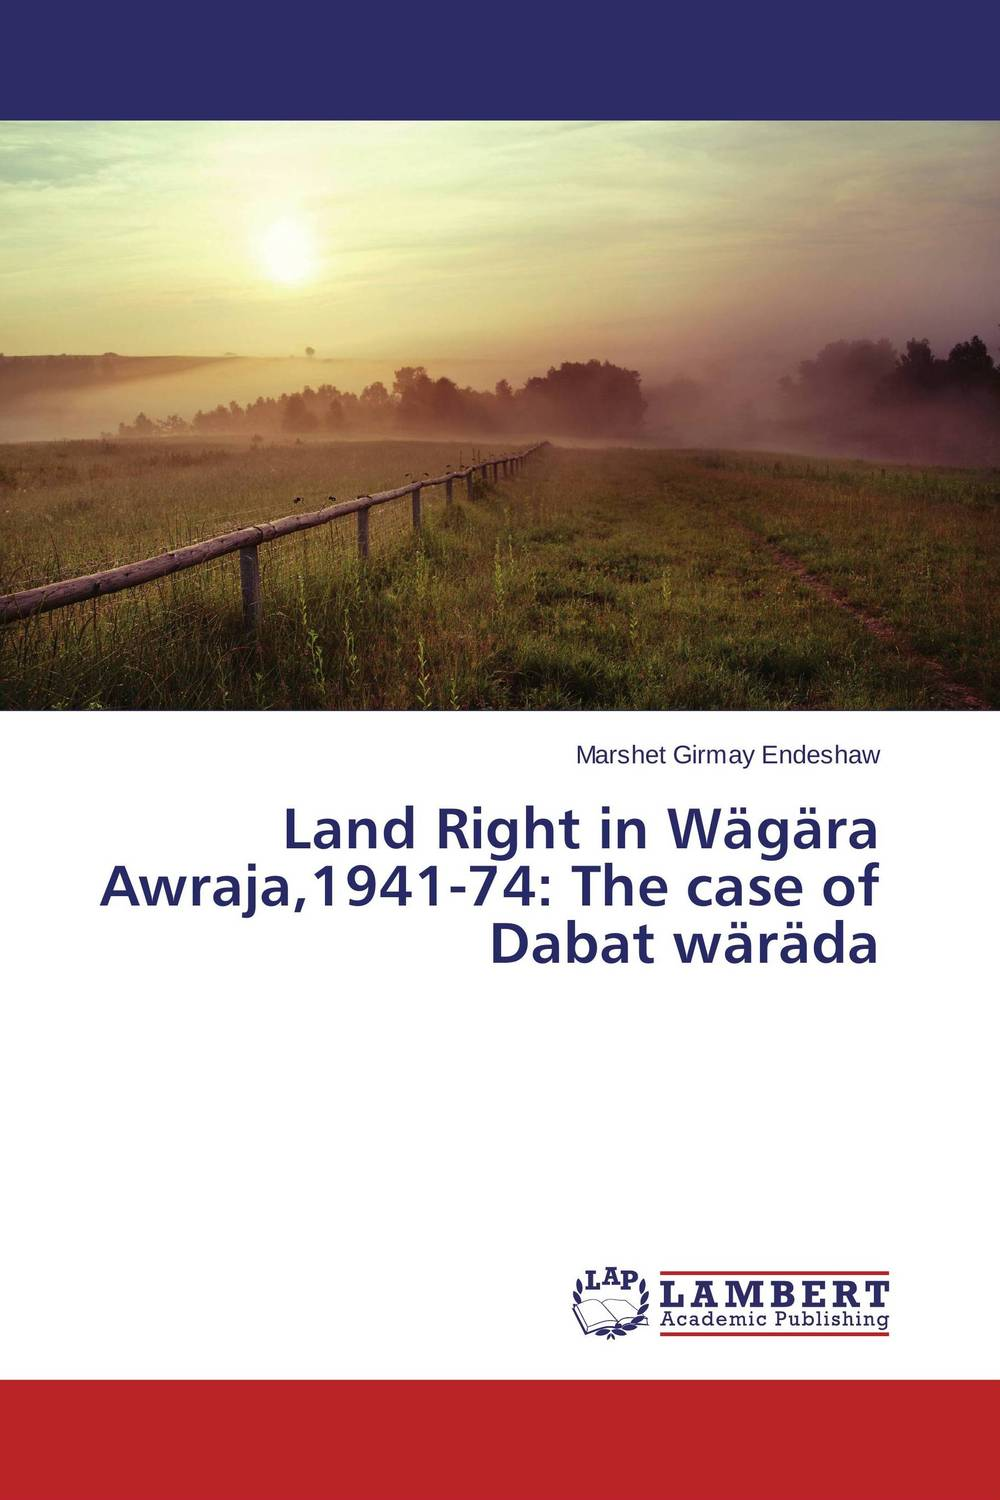 Land Right in Wagara Awraja,1941-74: The case of Dabat warada in the land of the reindeer